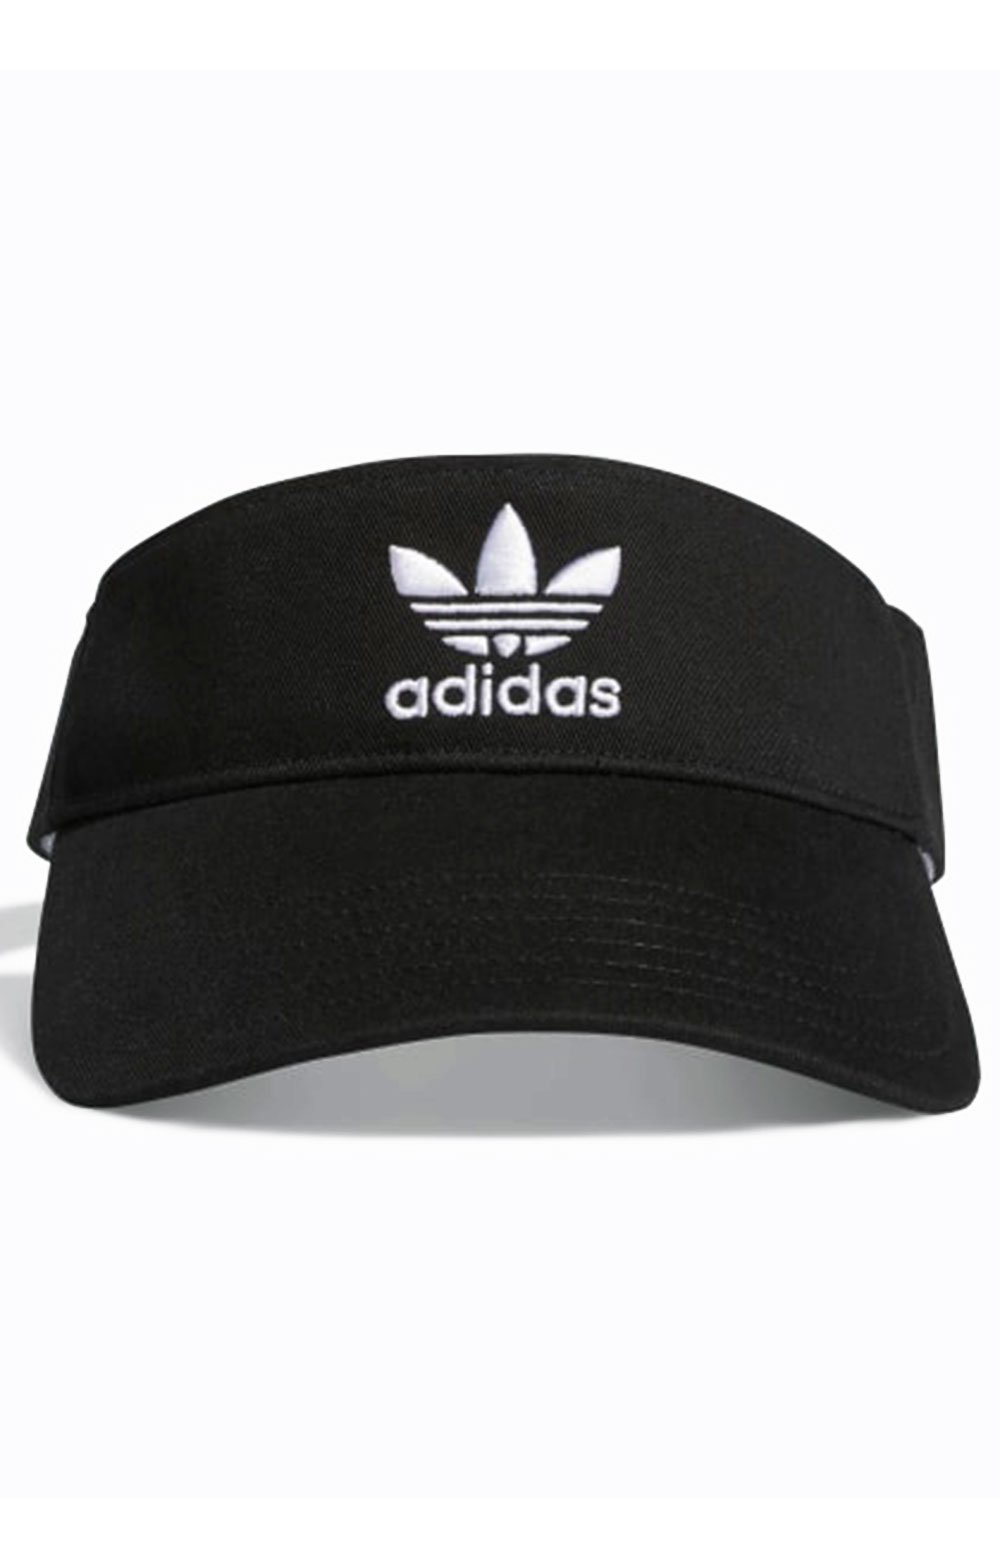 Originals Twill Visor - Black/White